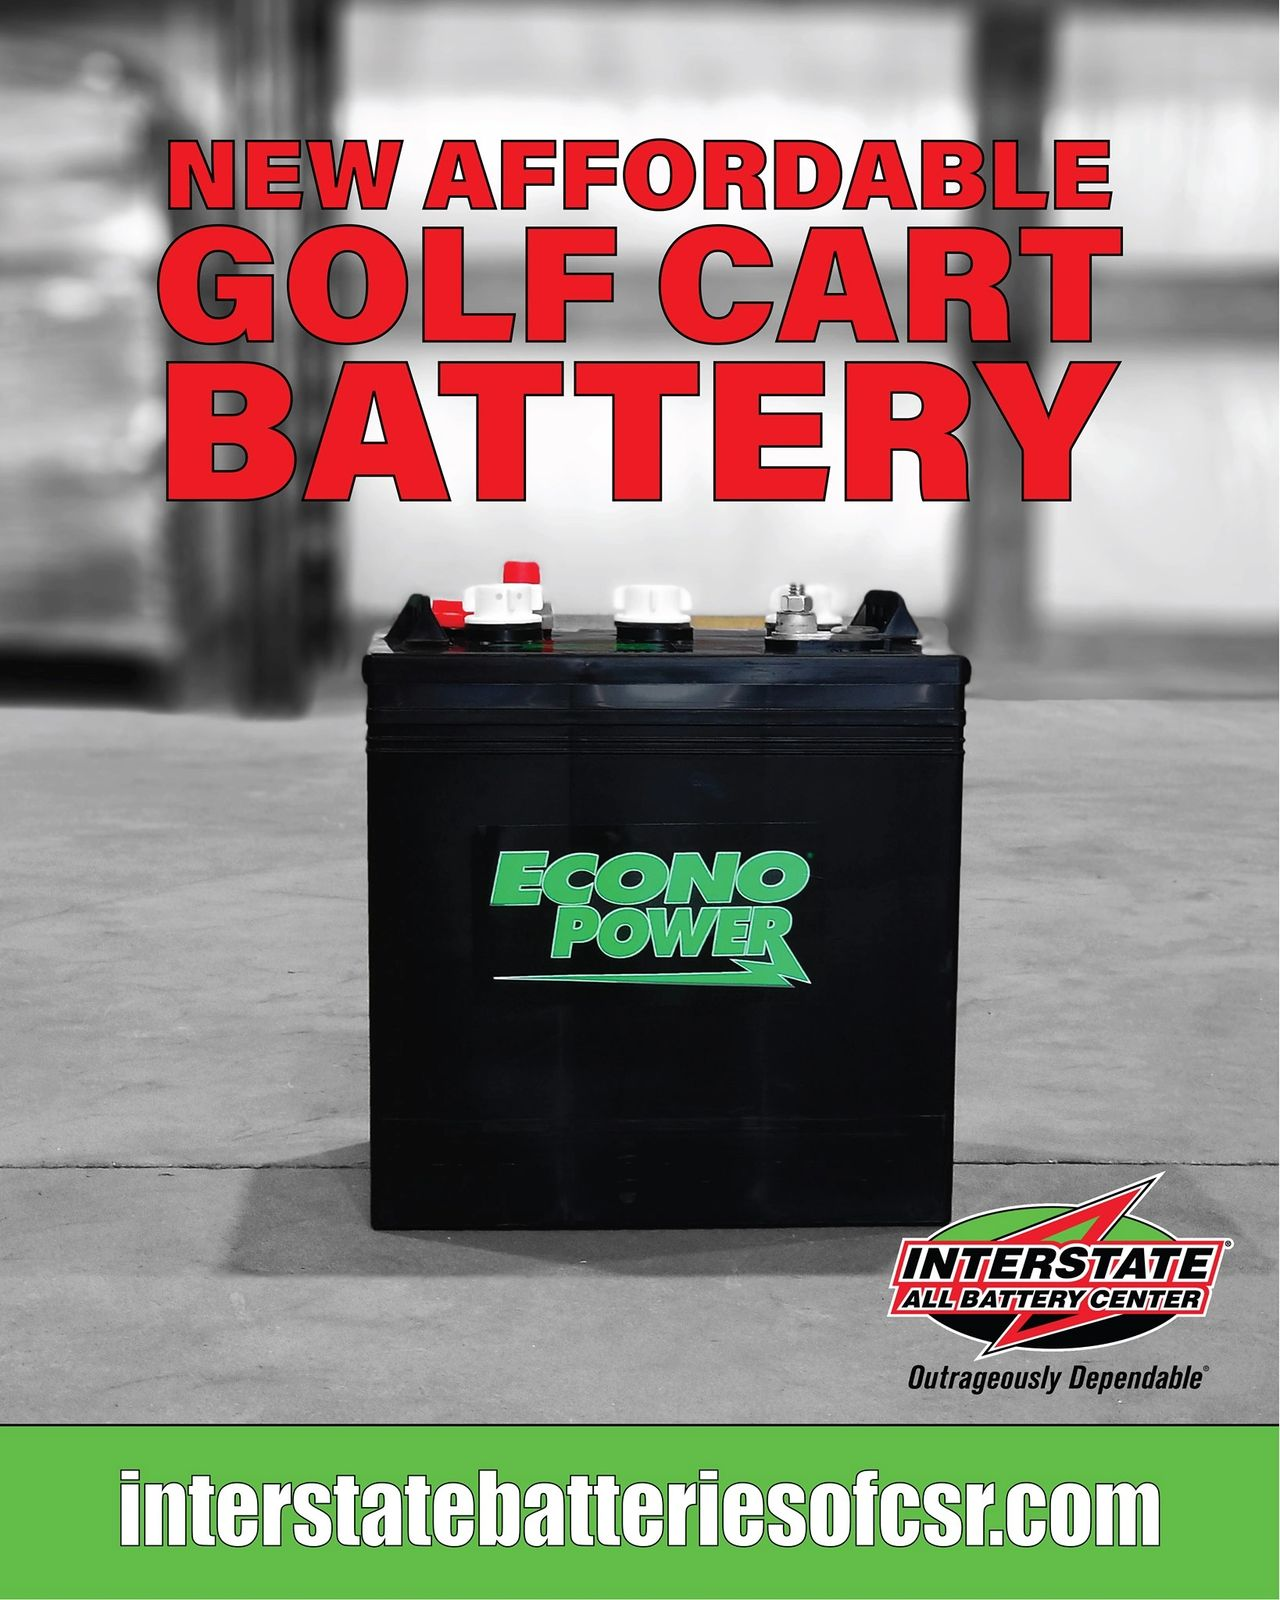 New Affordable Golf Cart Batteries!